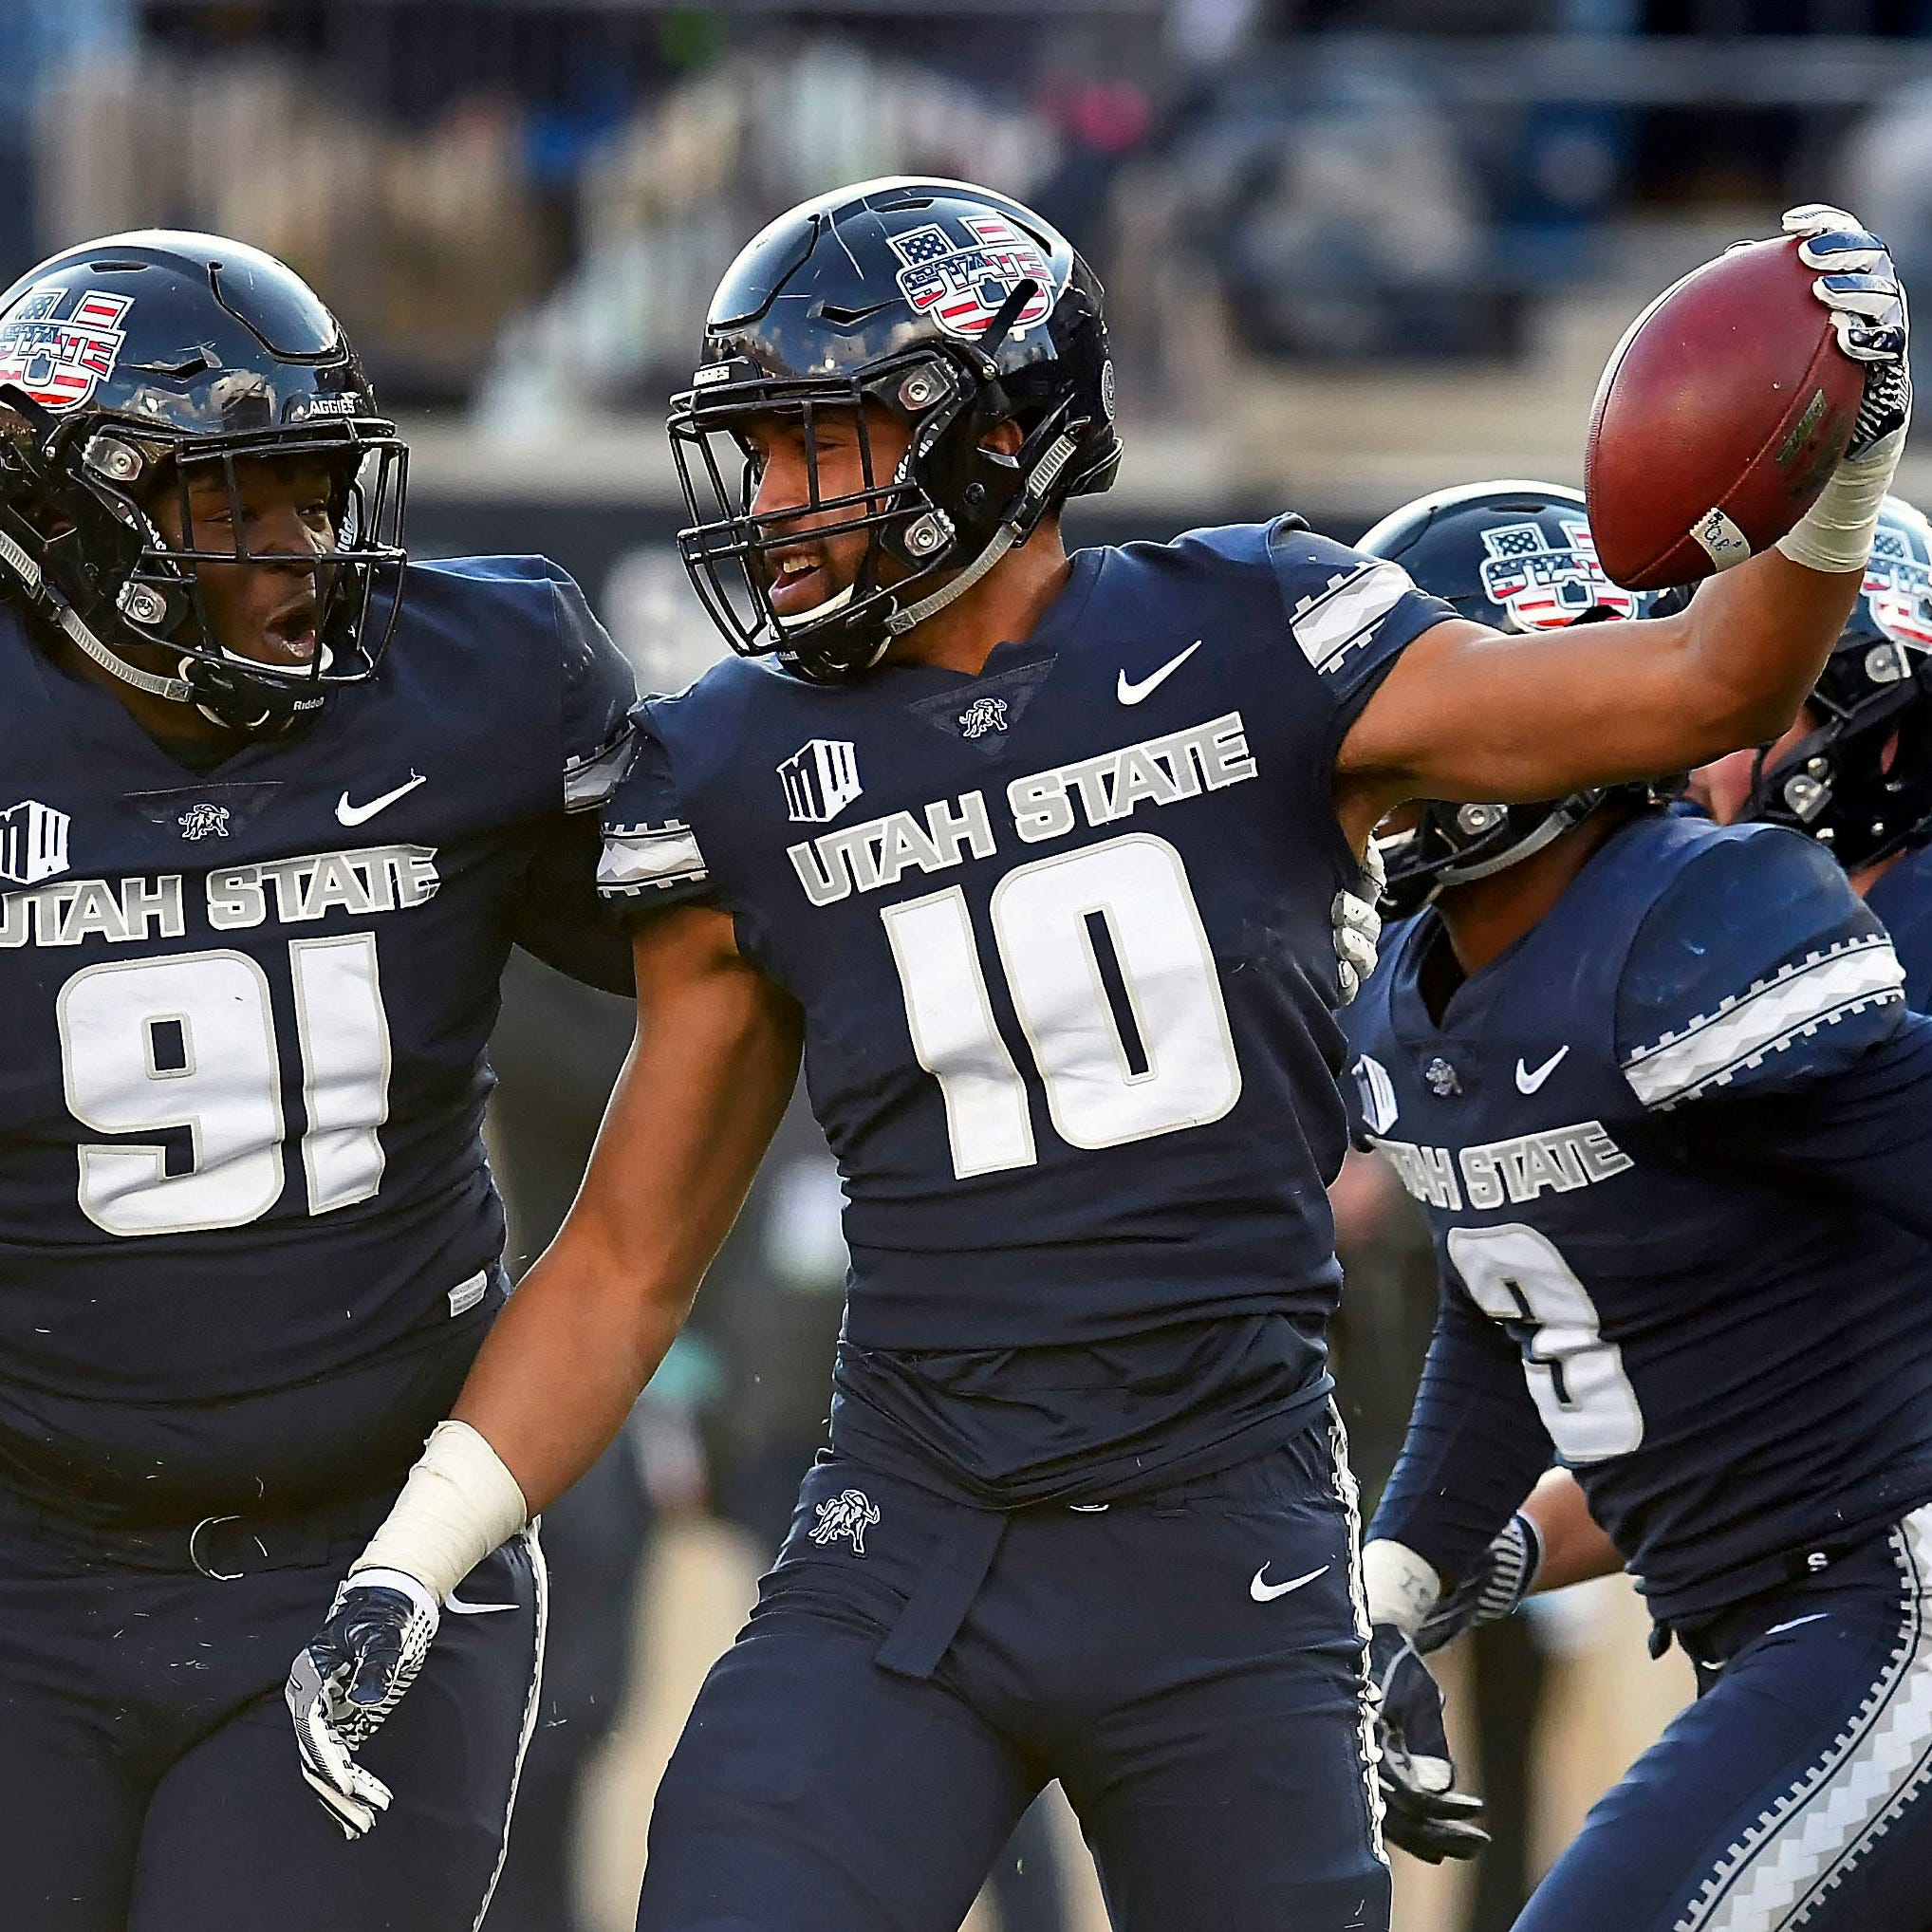 Despite CFP snub, Utah State football is best in Mountain West